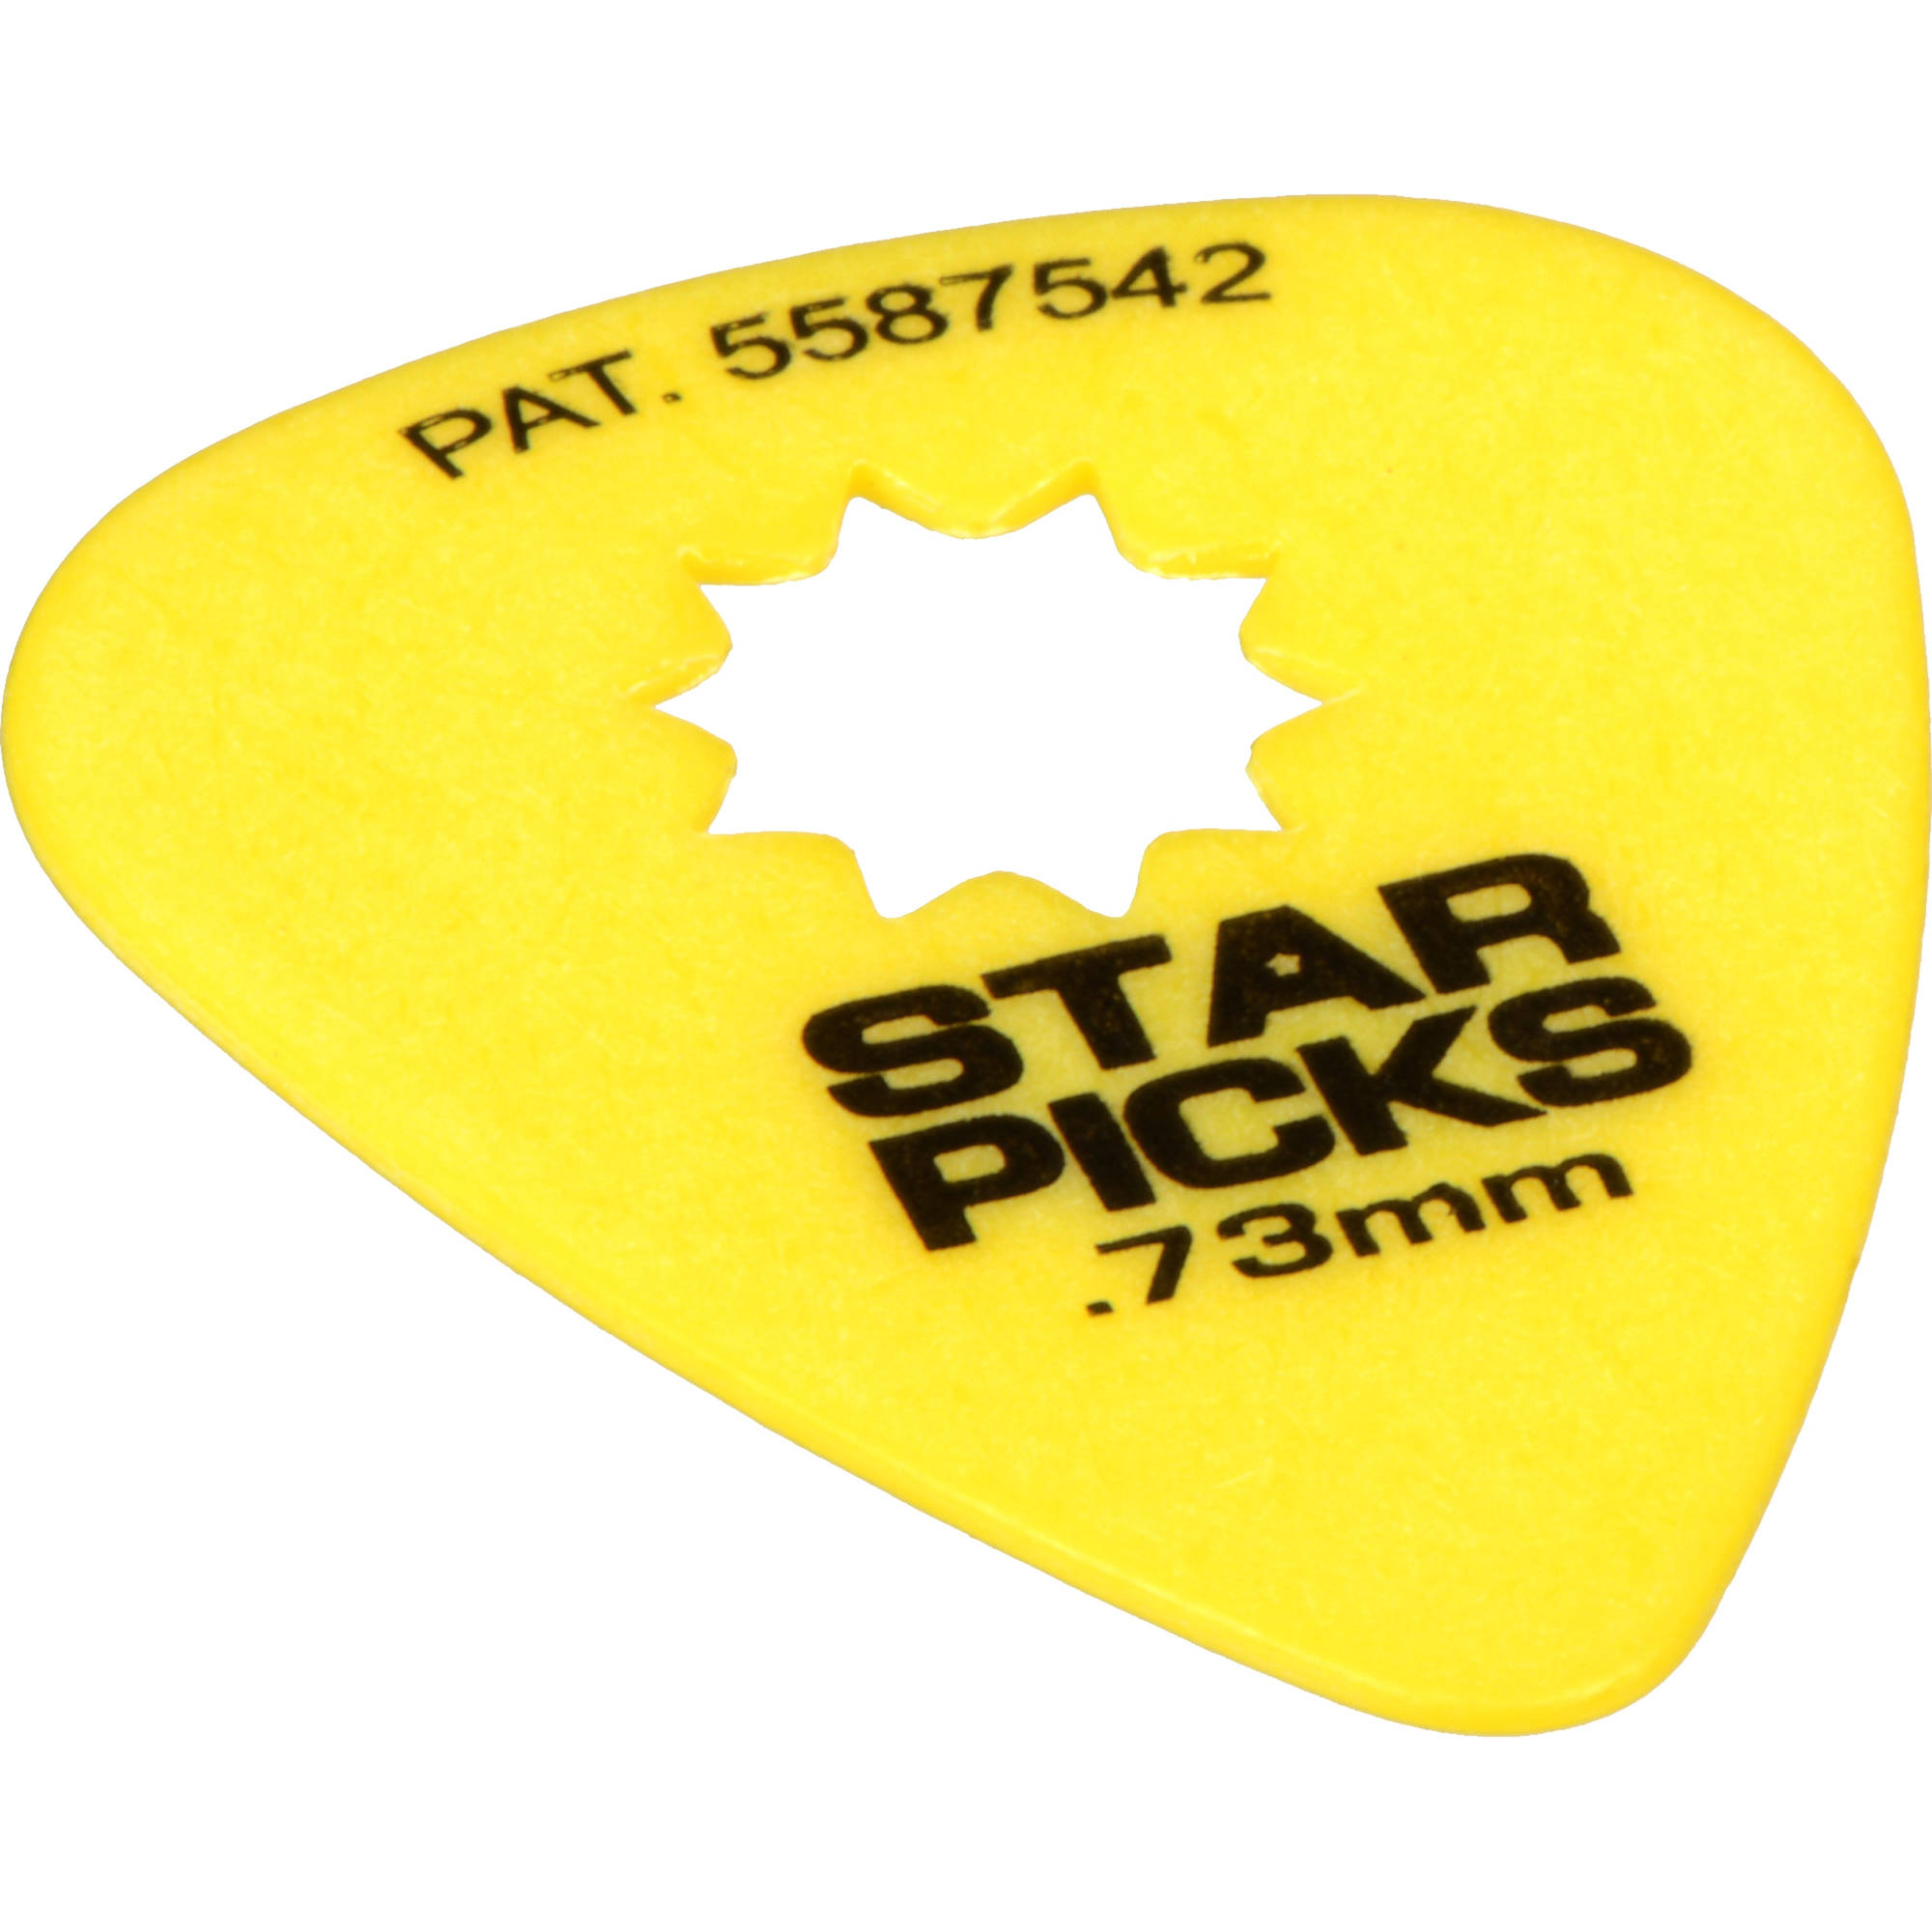 everly star pick 12 pack of guitar picks 73mm yellow 30023. Black Bedroom Furniture Sets. Home Design Ideas